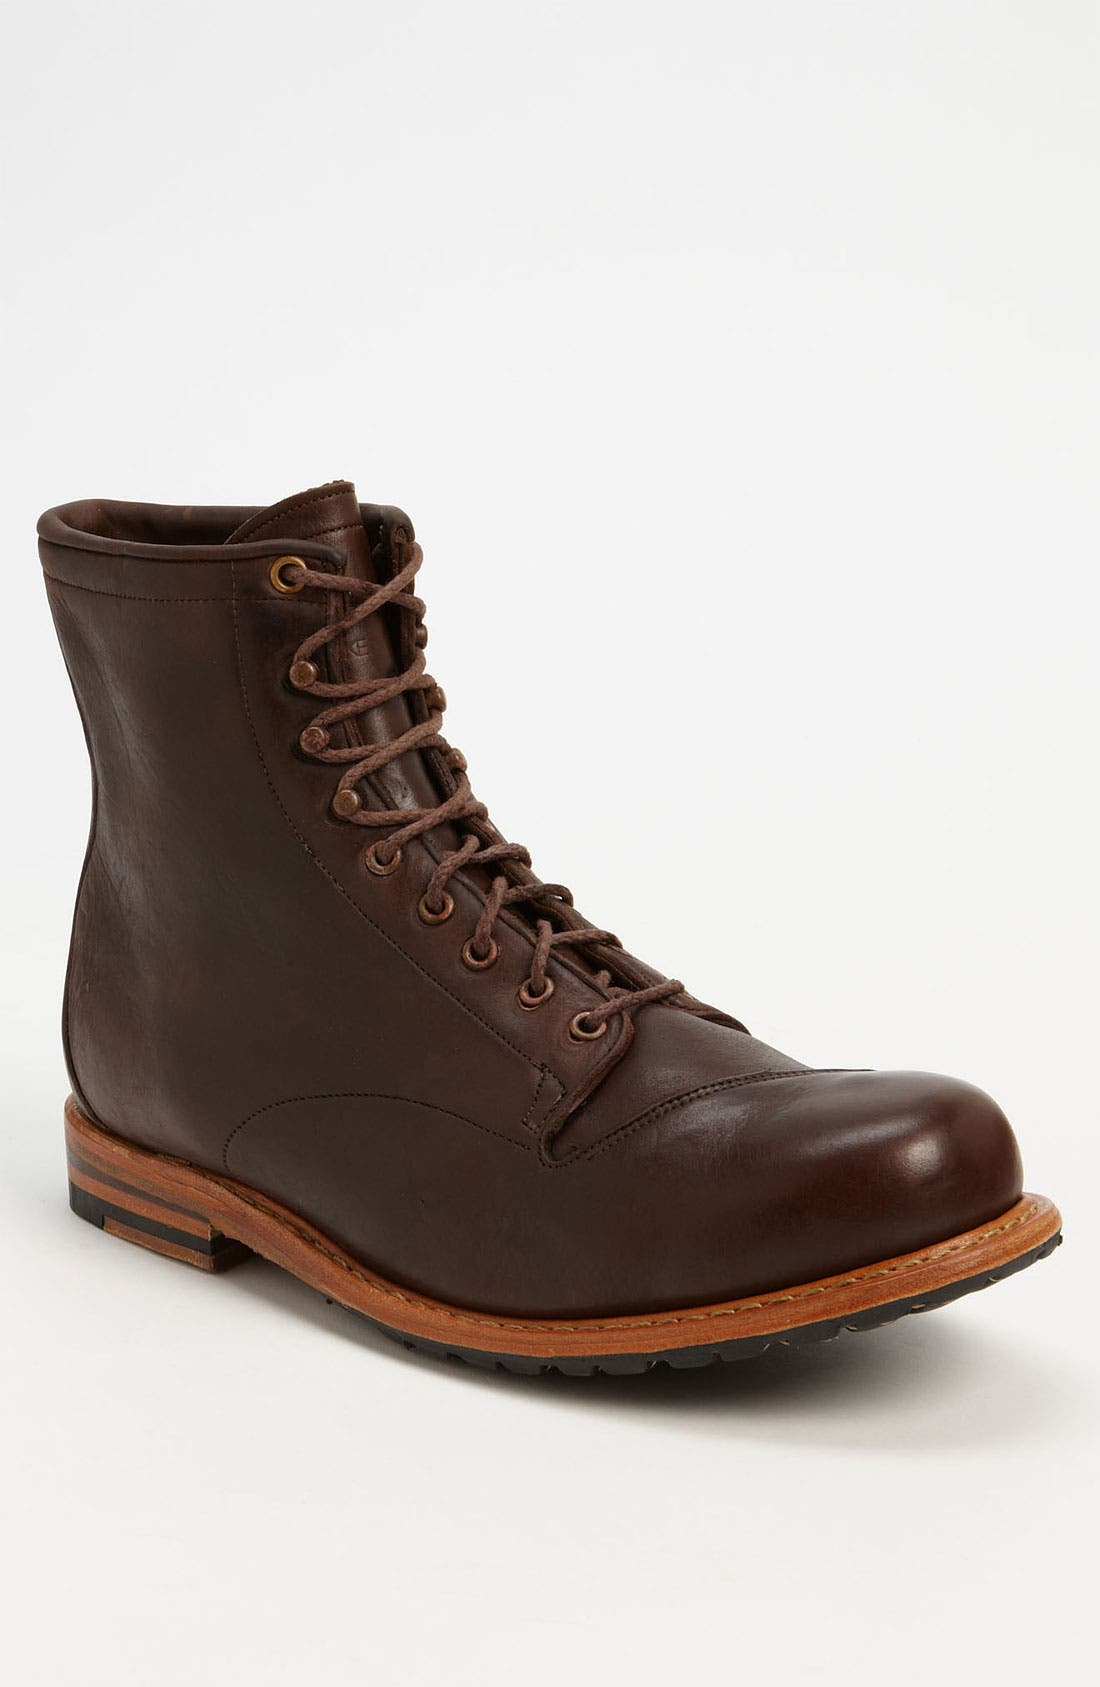 Alternate Image 1 Selected - Timberland Boot Company 'Blake Winter' Cap Toe Boot